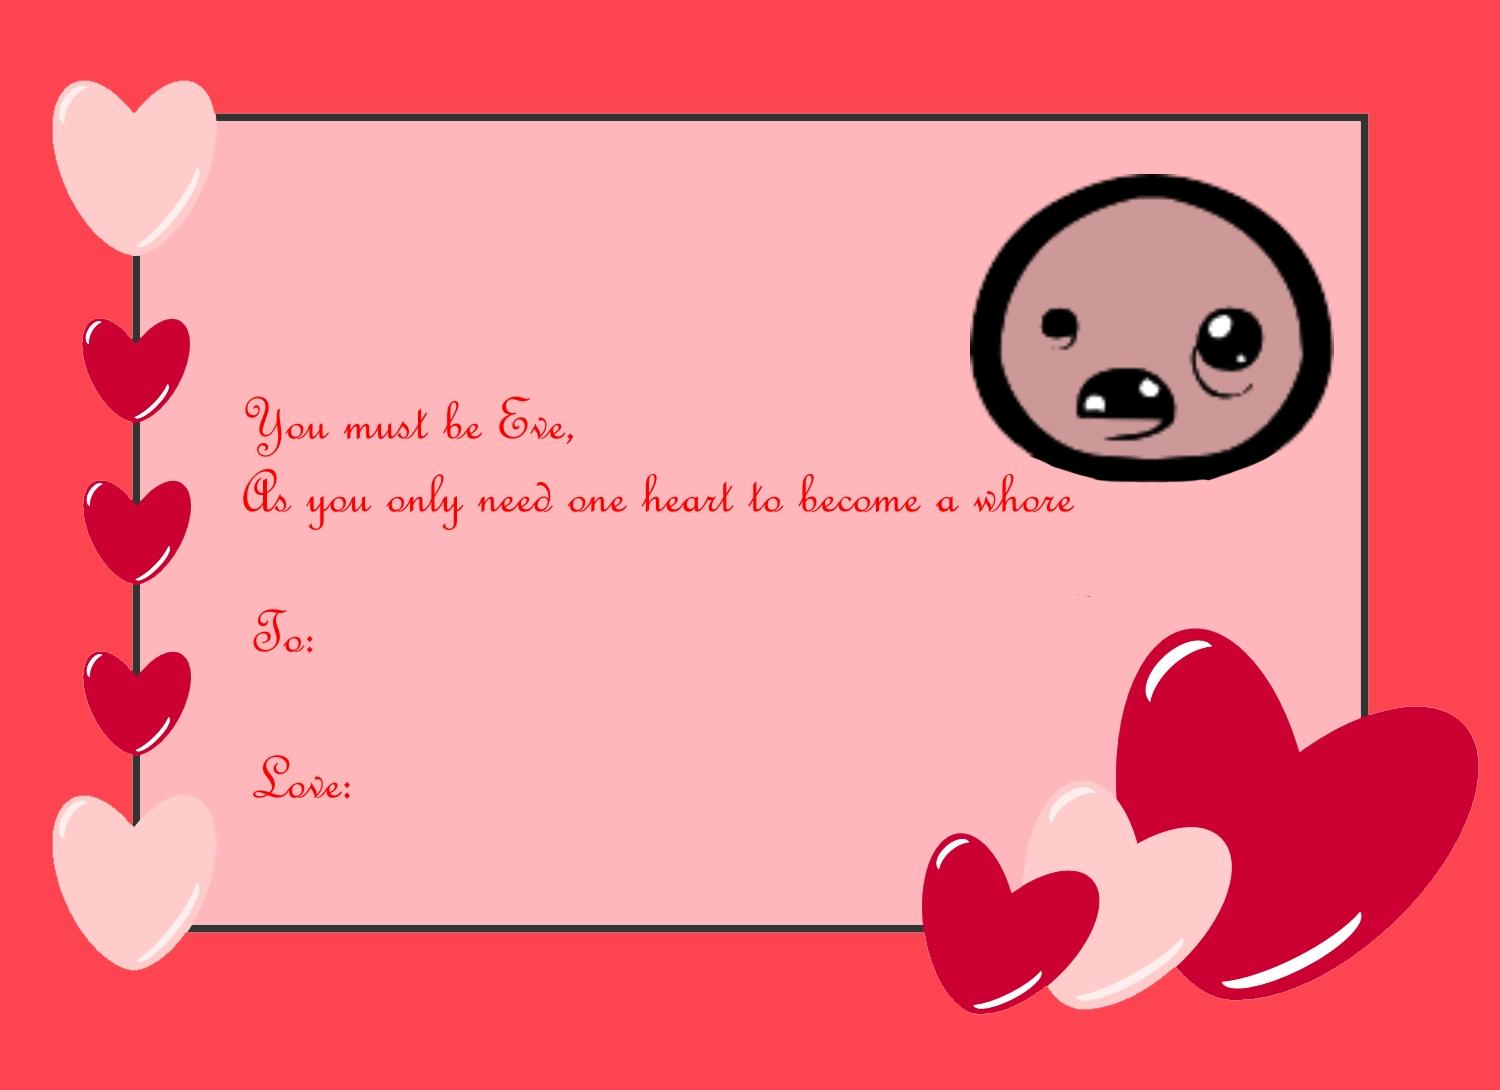 Valentine's day cards dirty sexy naughty, funny cards